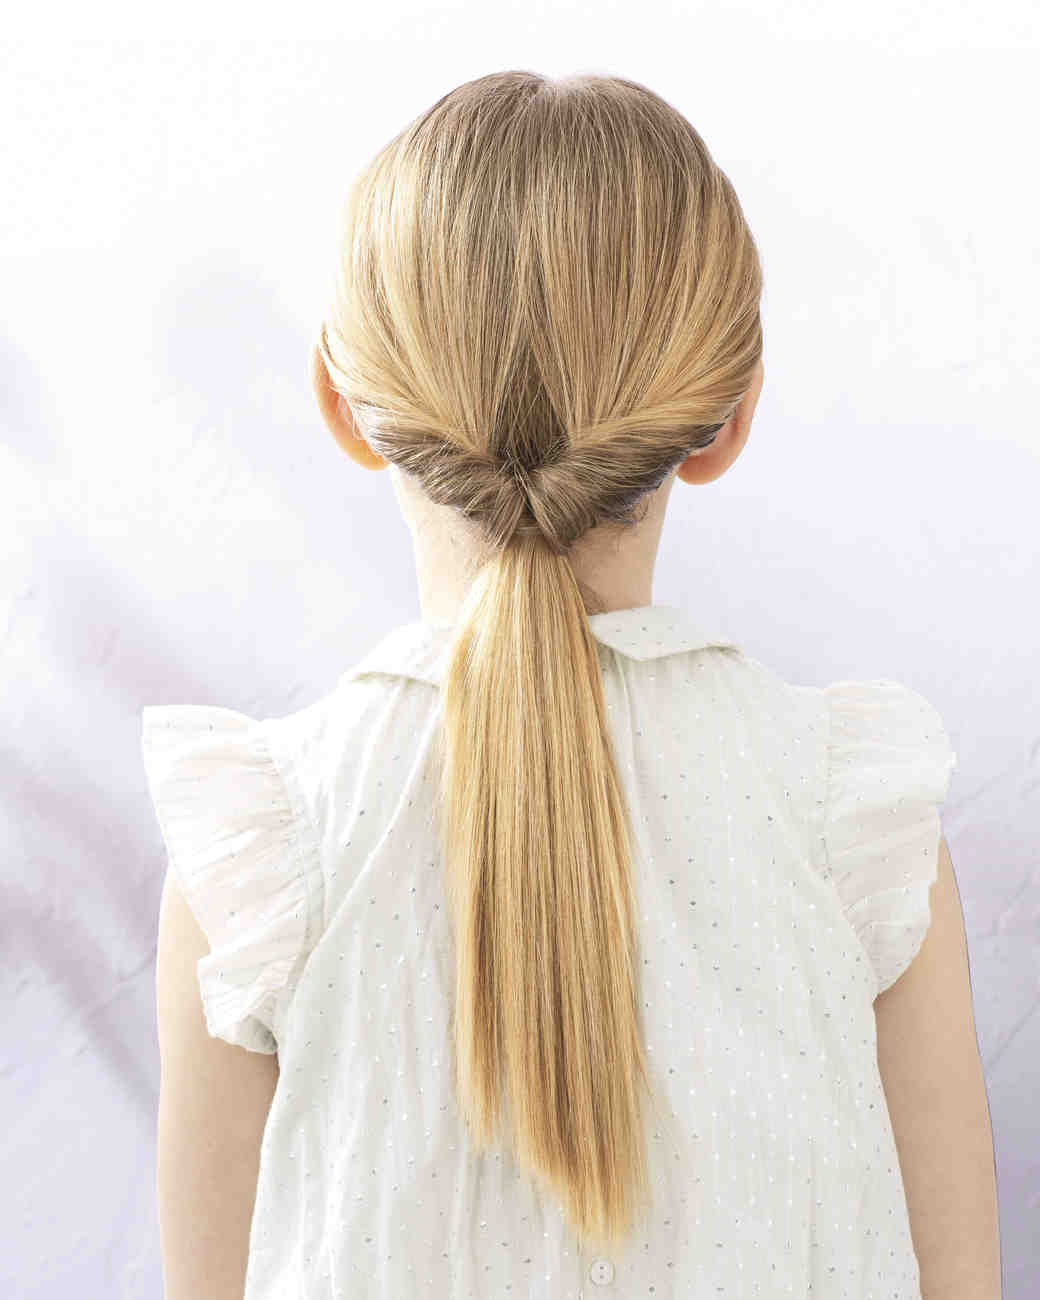 Flower Girl Hairstyles super cute flower girl hairstyle ideas to make Flipped Ponytail